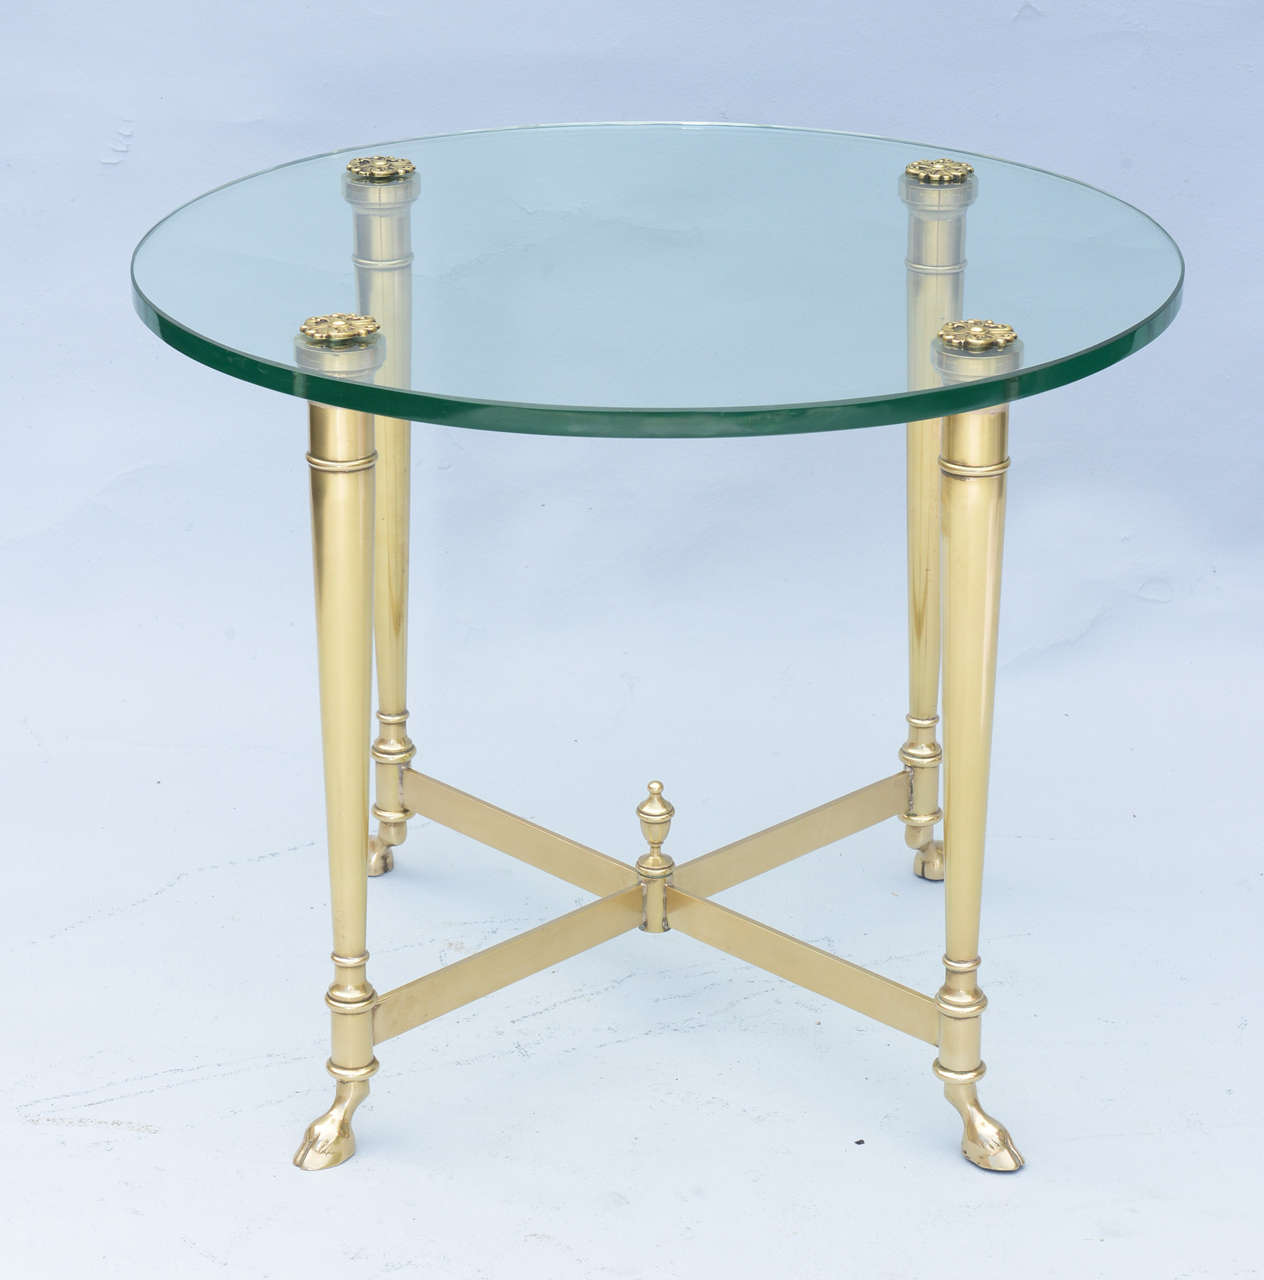 Jansen style single side or end table of polished brass its round glass